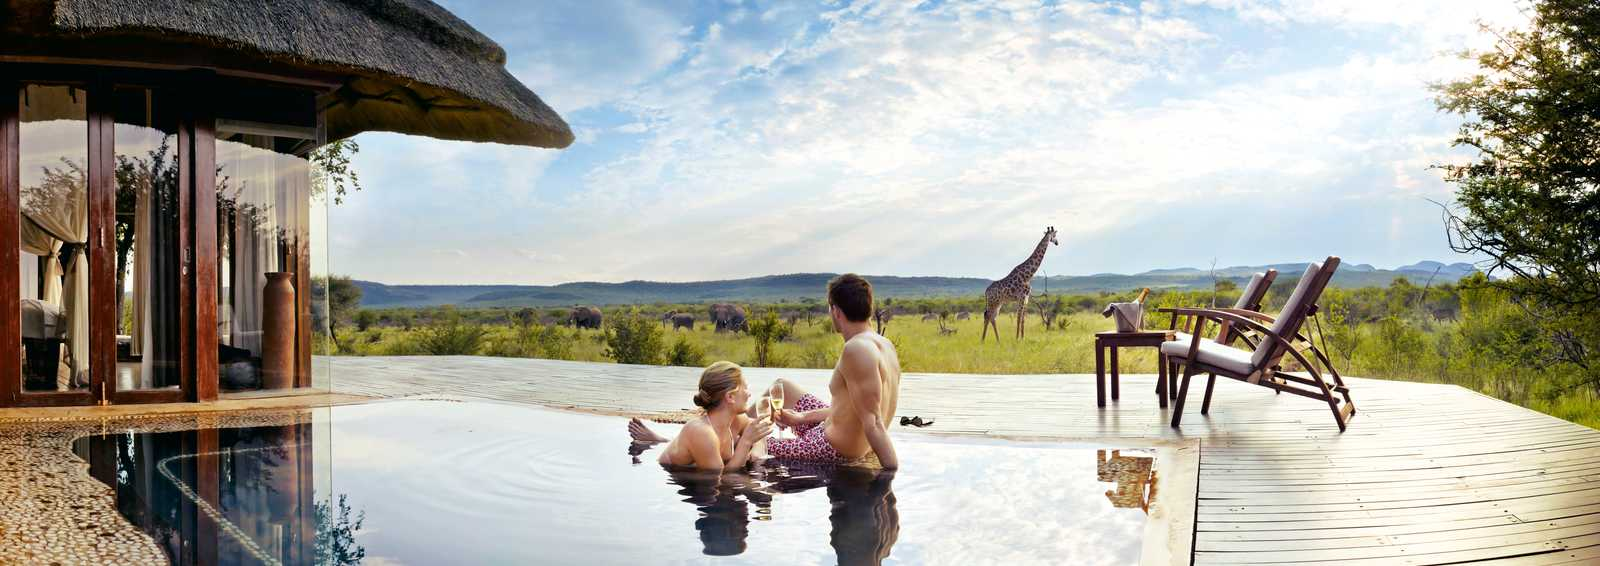 Pool with wildlife in South Africa